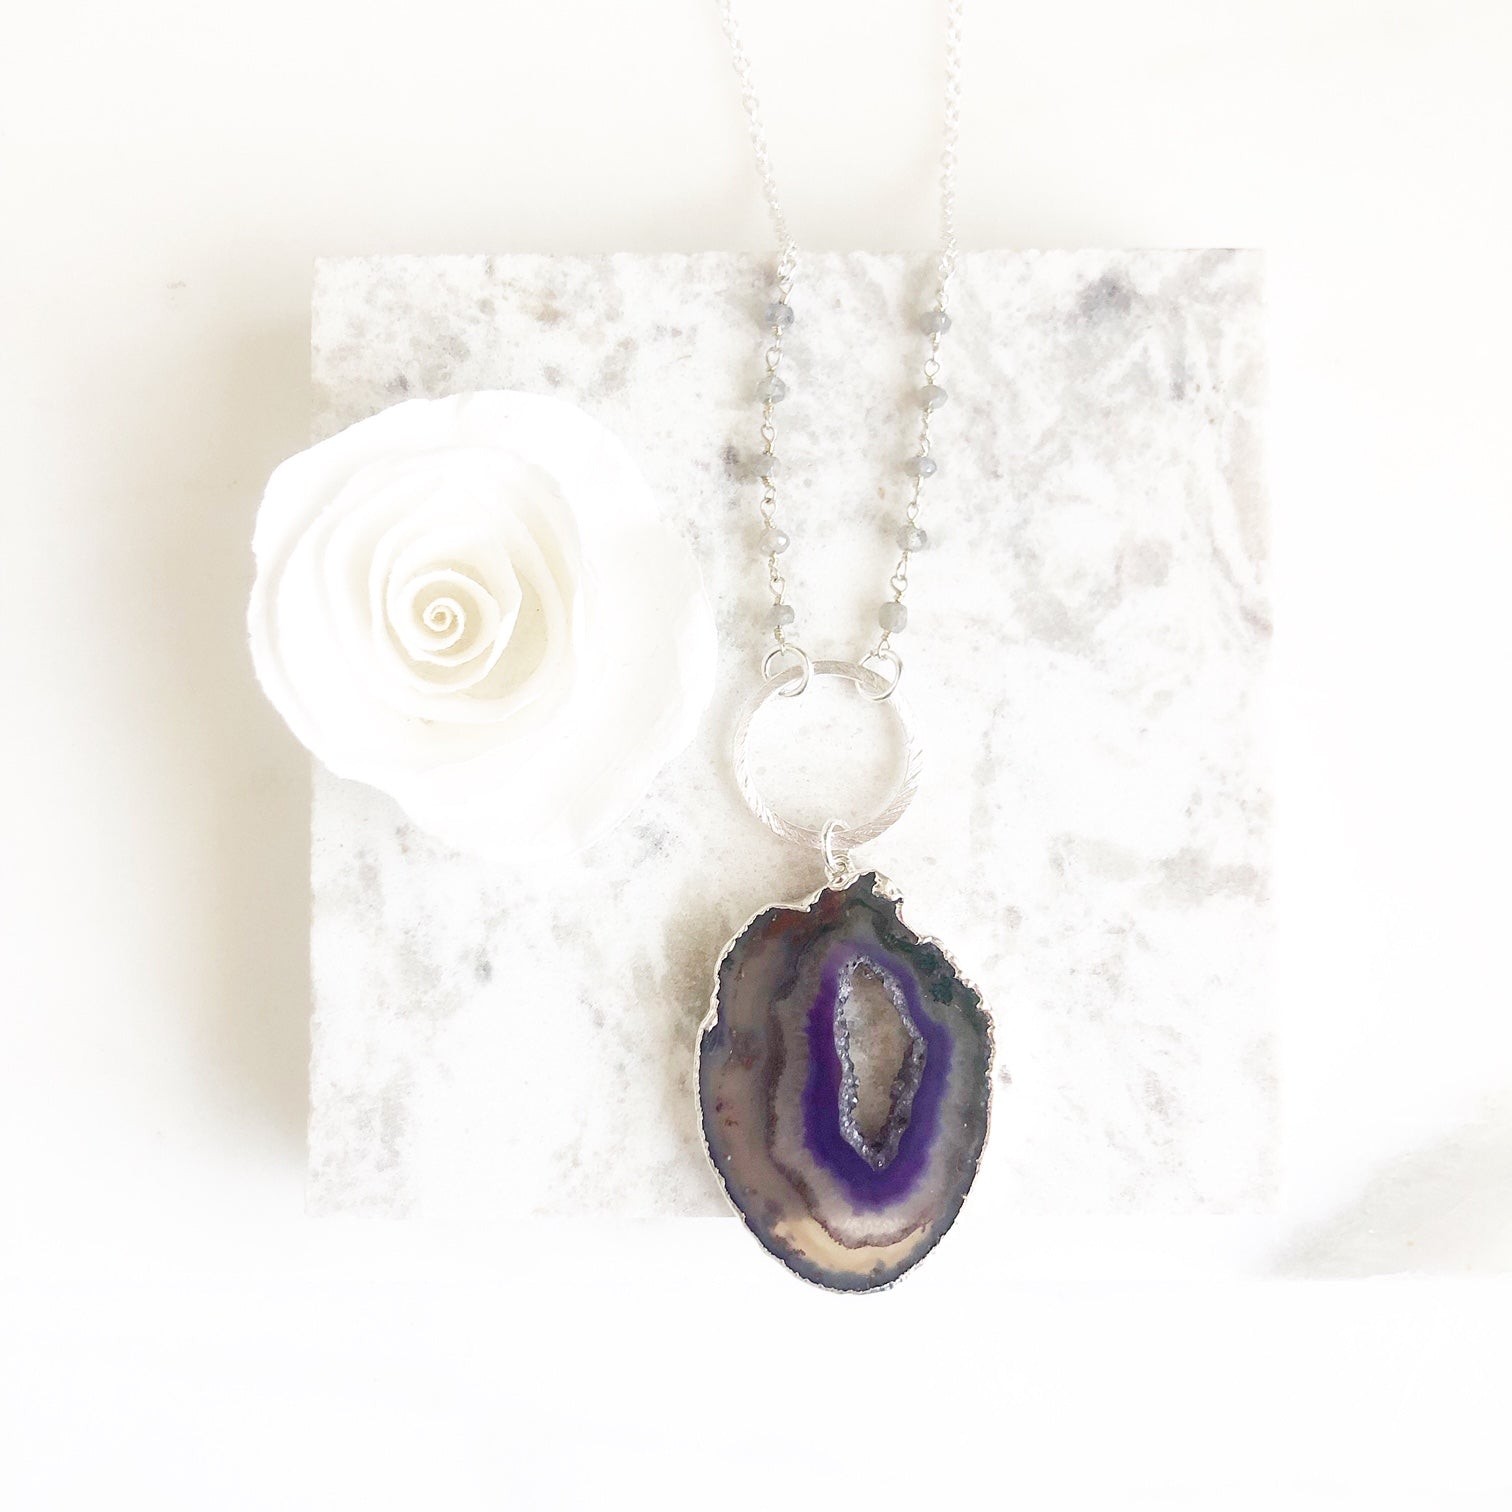 Purple Geode Ring Necklace with Labradorite Beading Accents. Sterling Silver Necklace.